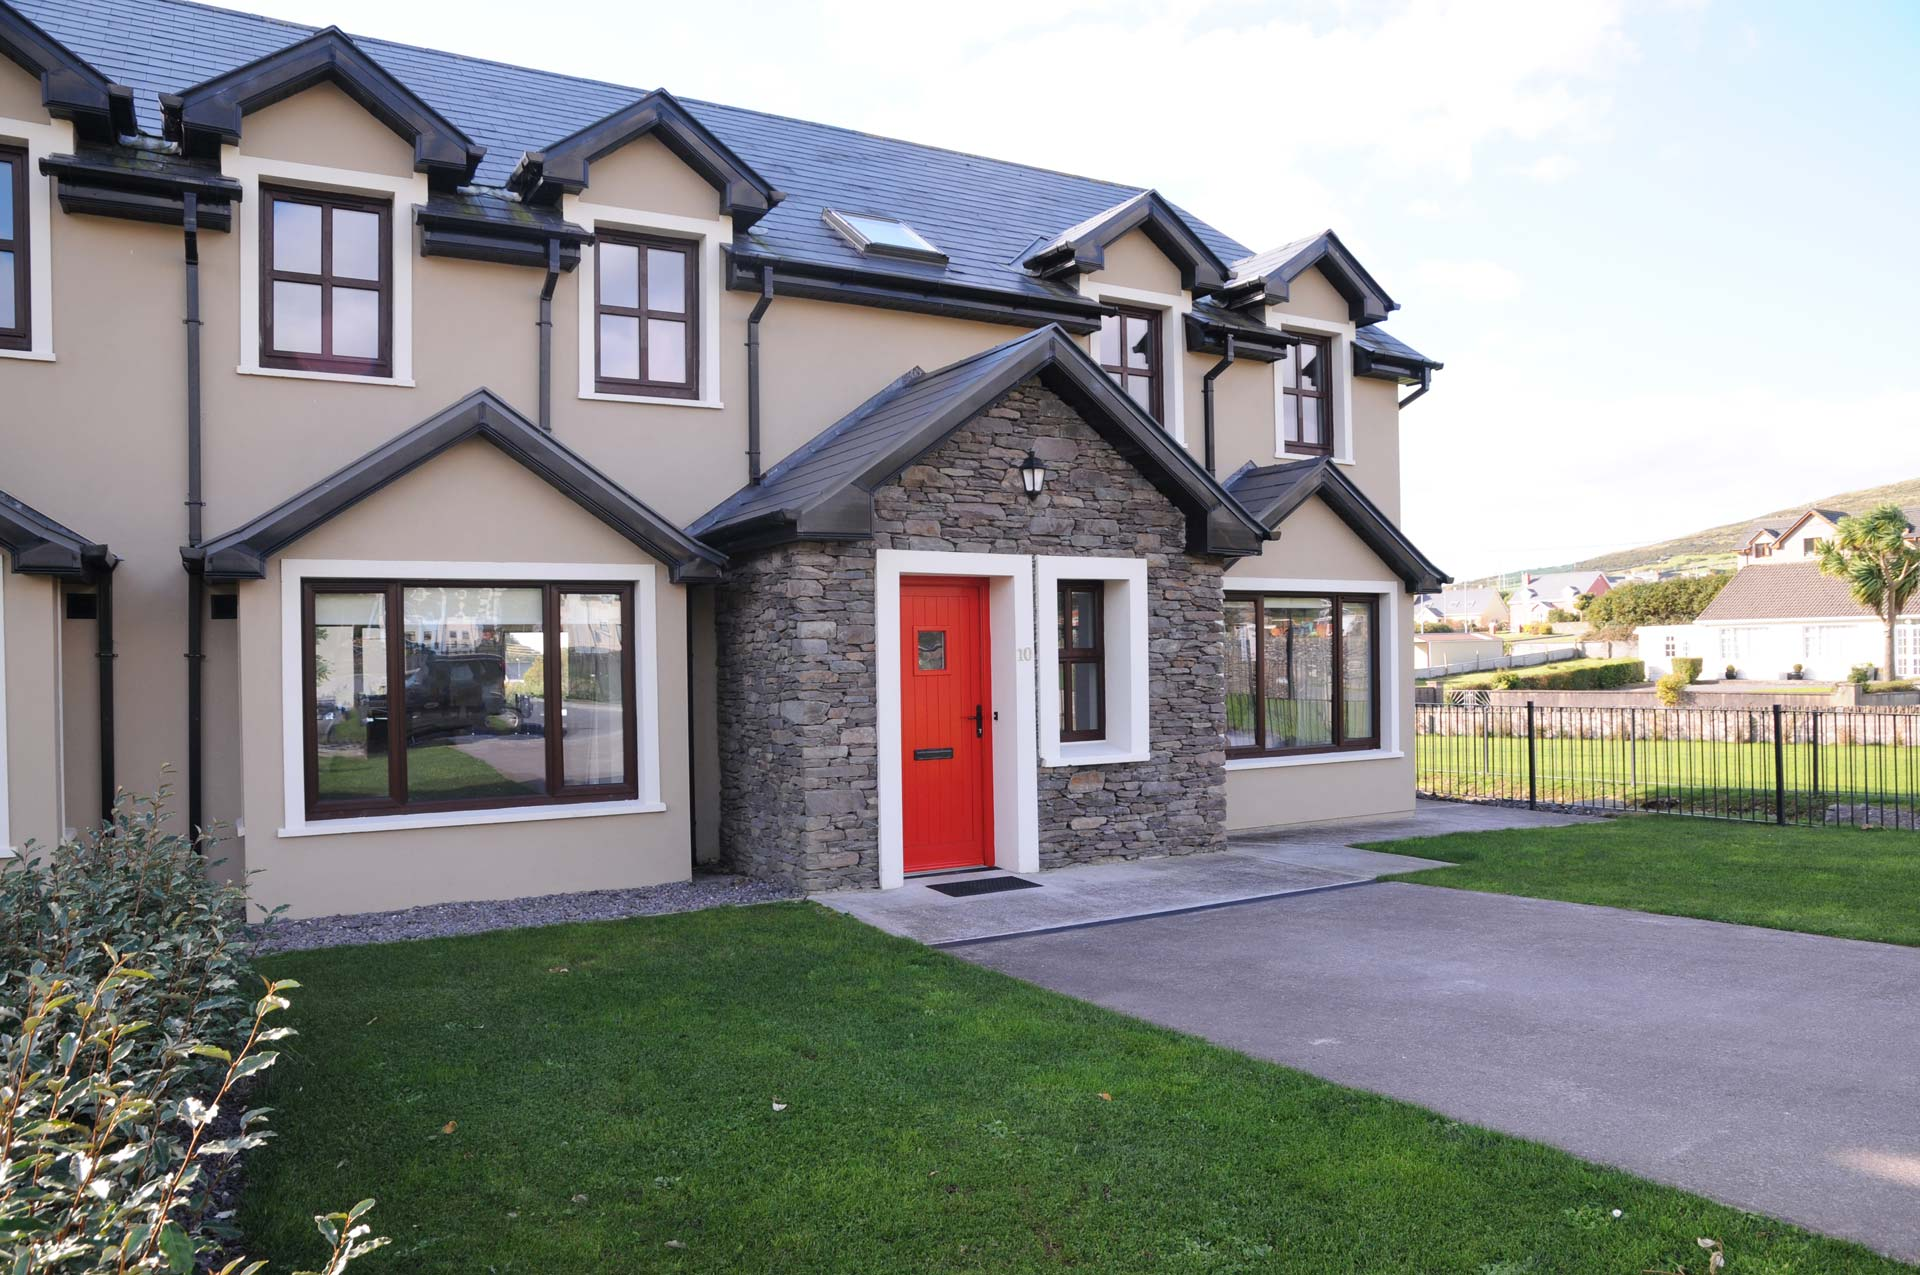 Luxury self catering holiday homes in Dingle, Kerry, Ireland